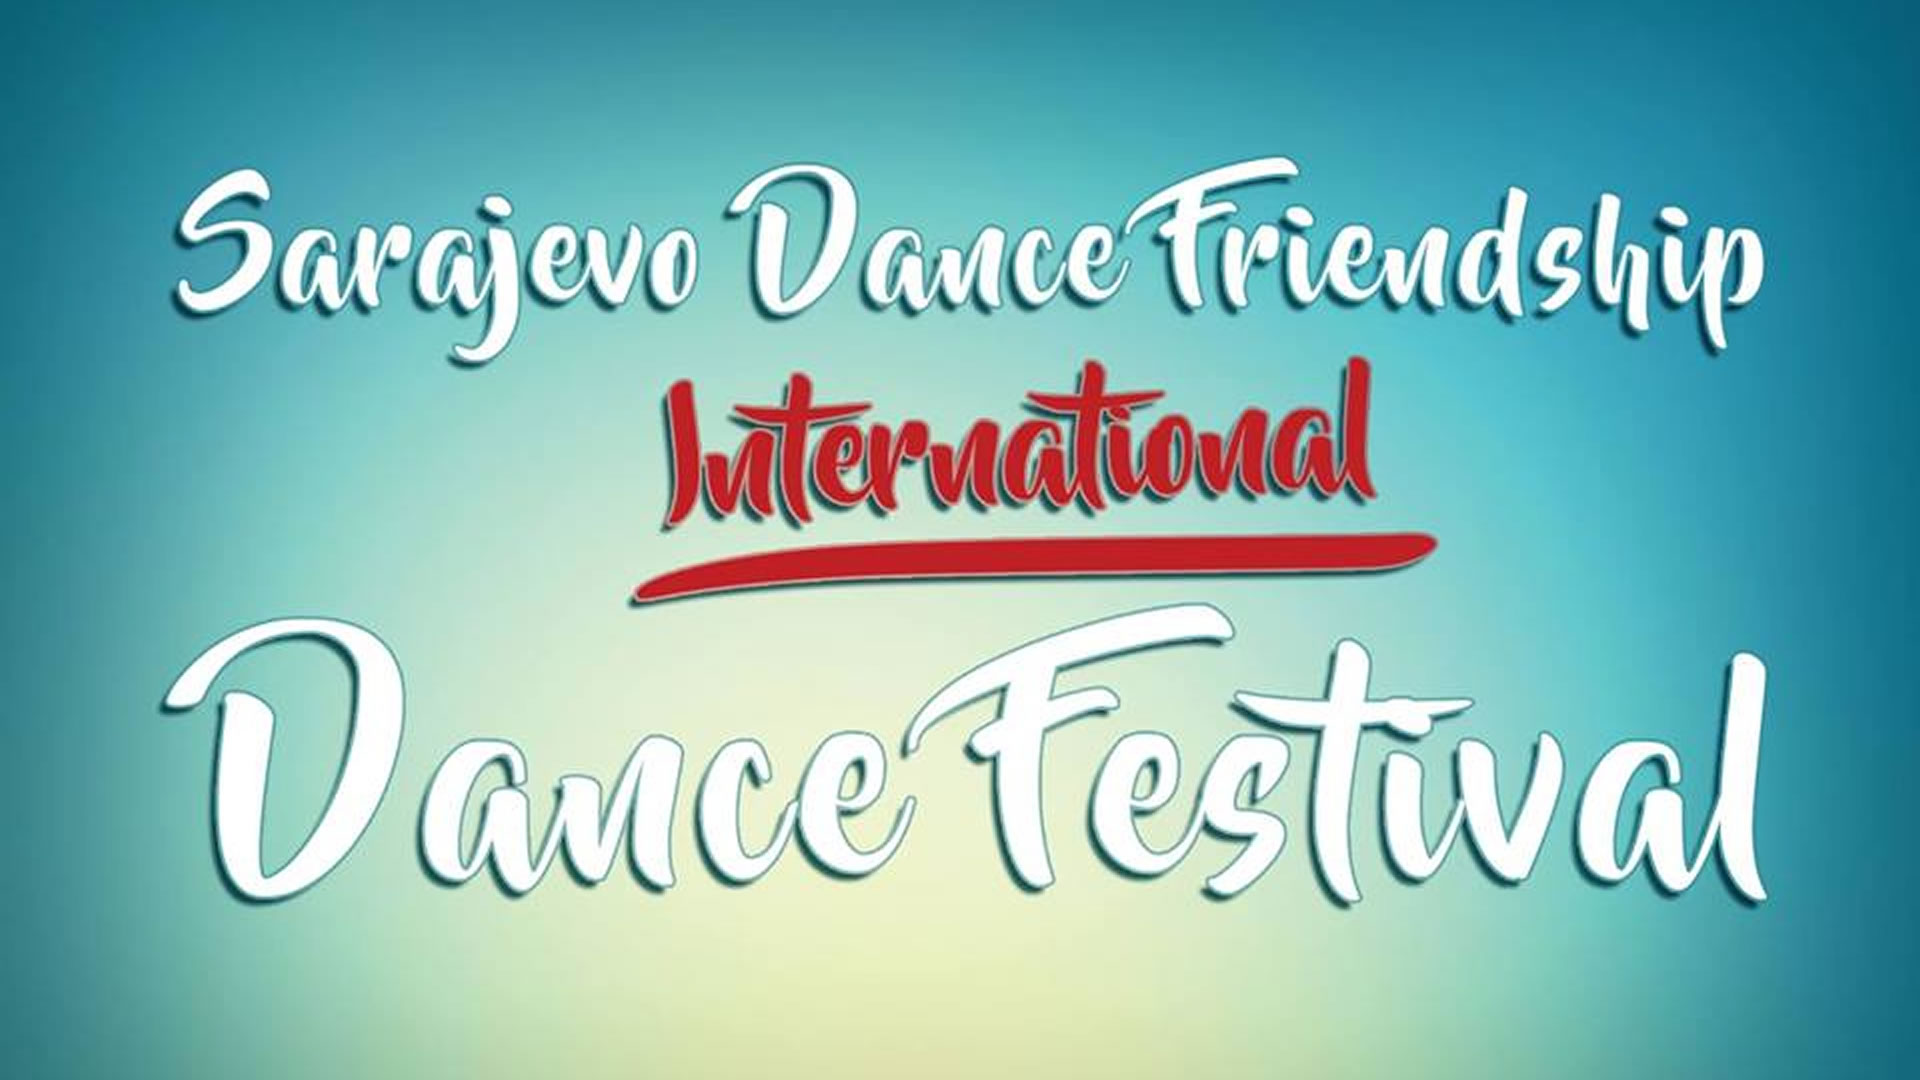 Sarajevo Dance Friendship - International Dance Festival